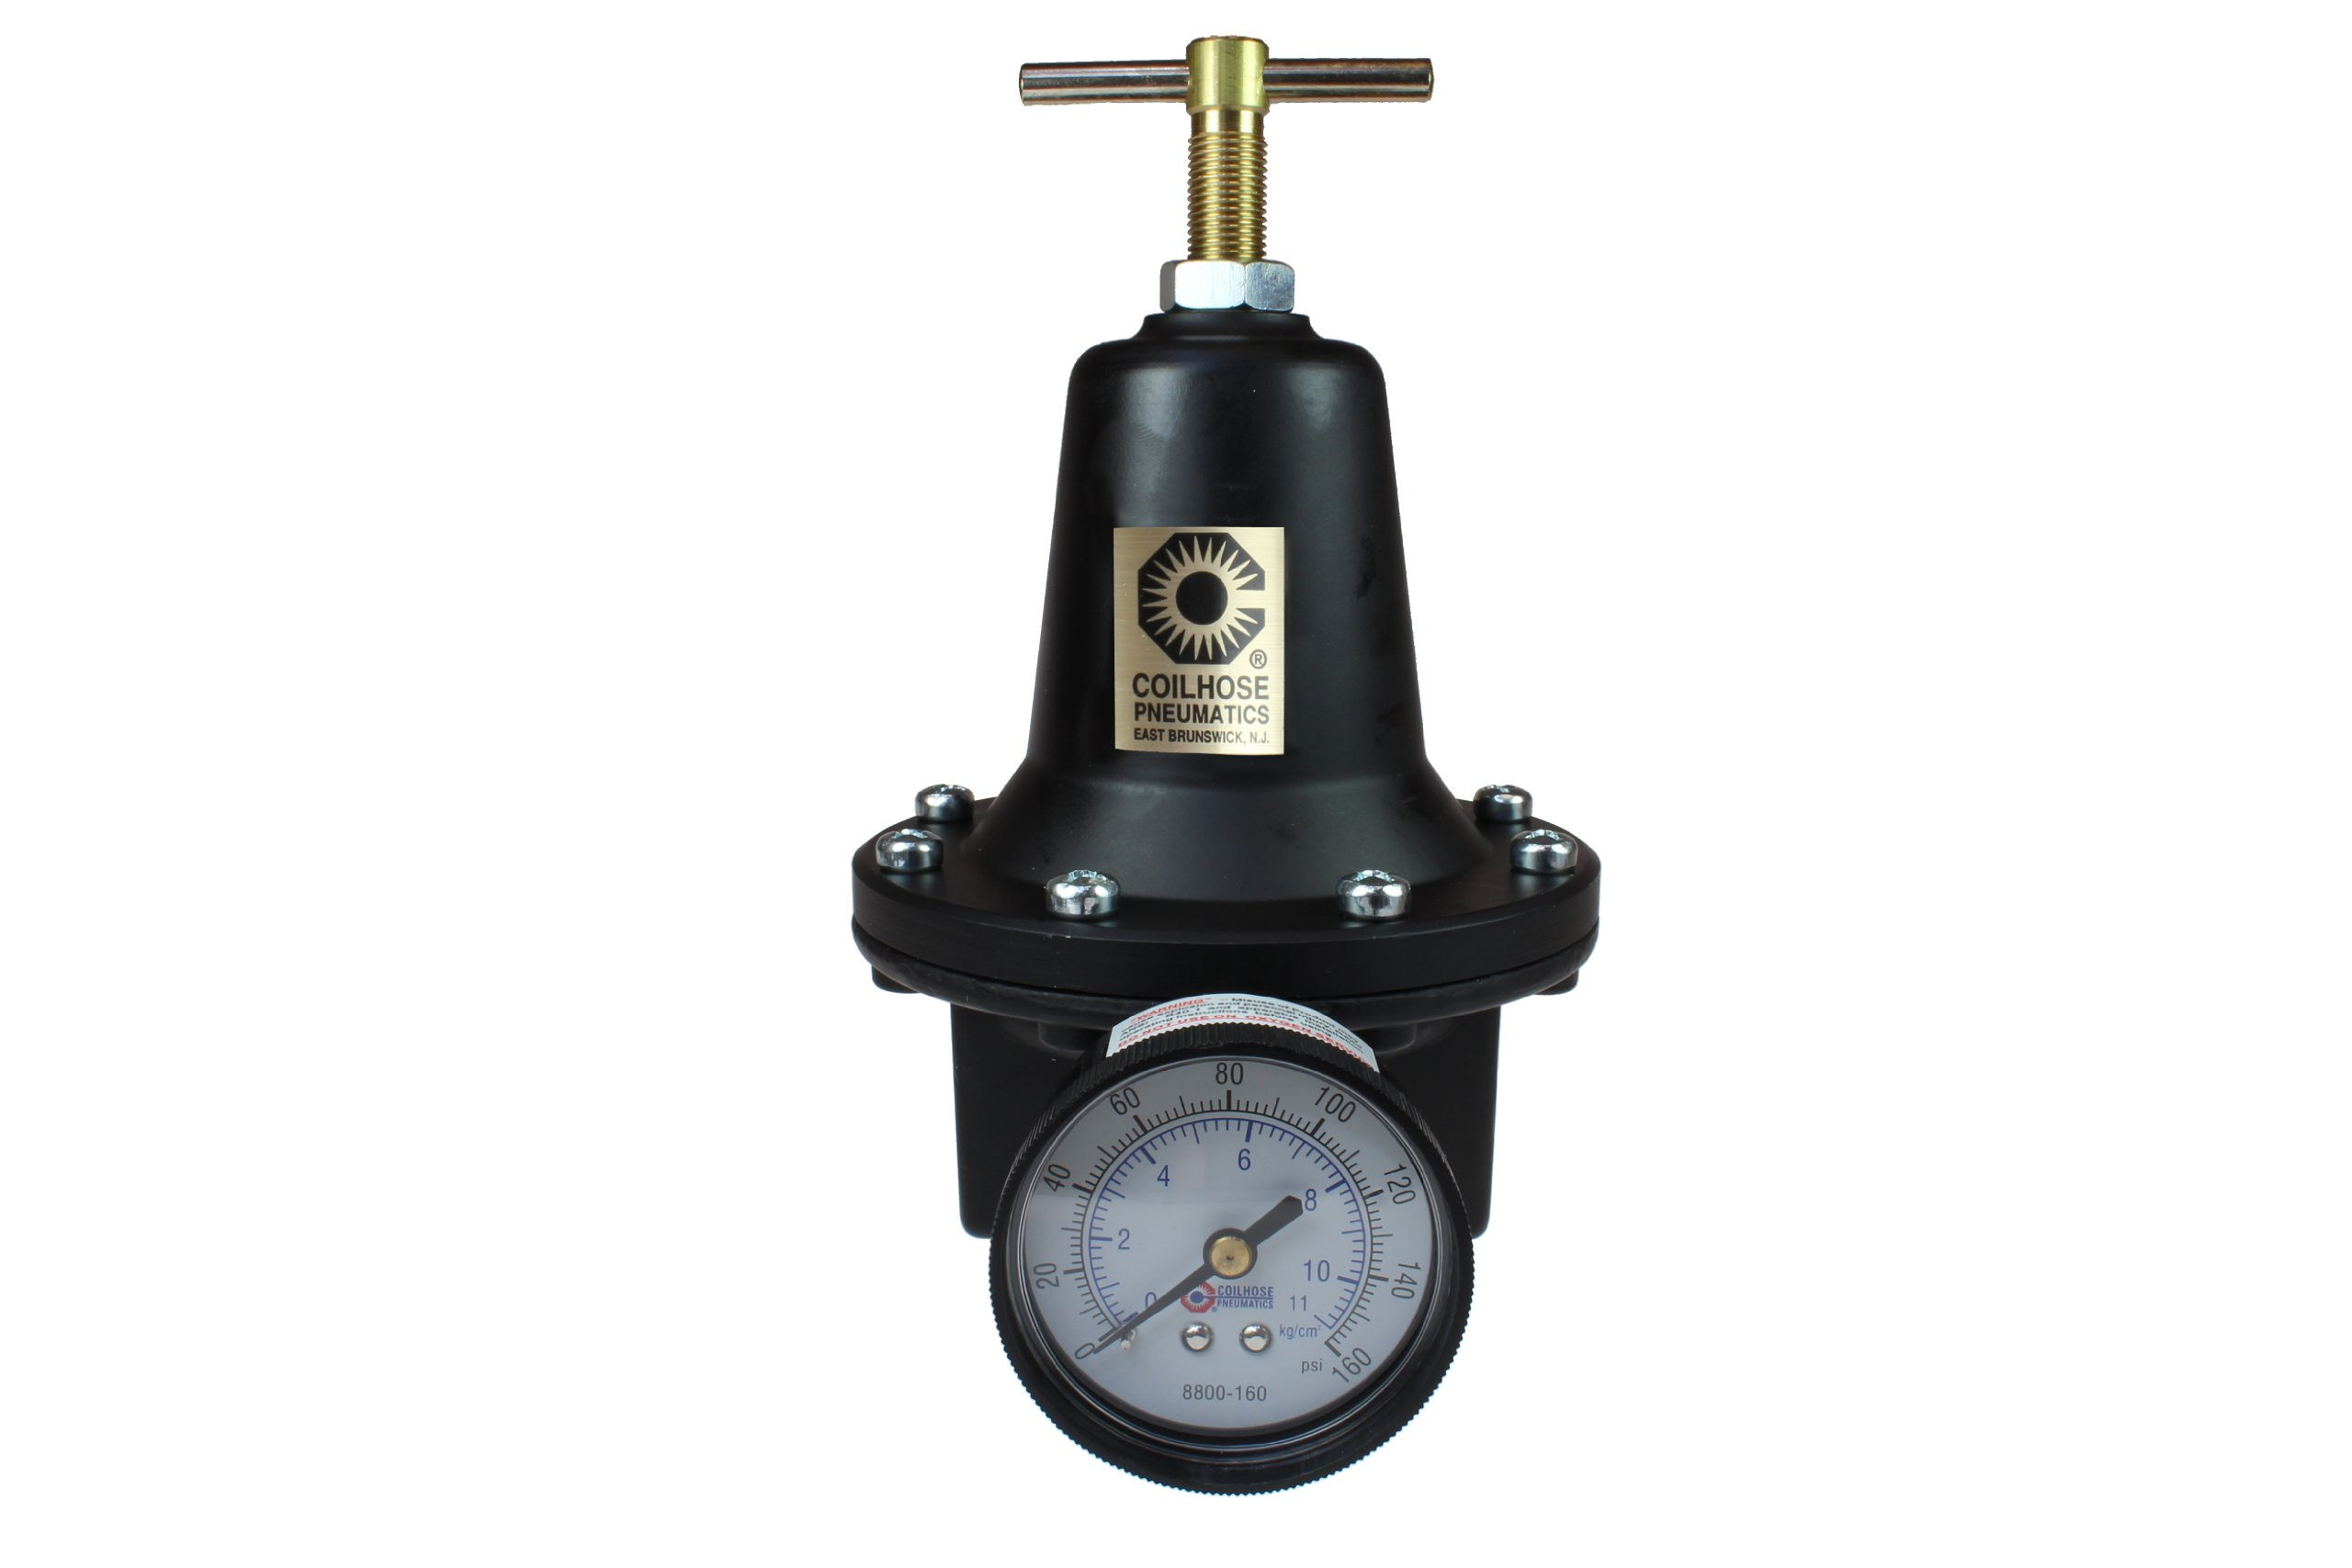 Coilhose Pneumatics 8806G Heavy Duty Series Regulator, 3/4-Inch Pipe Size with Gauge by Coilhose Pneumatics